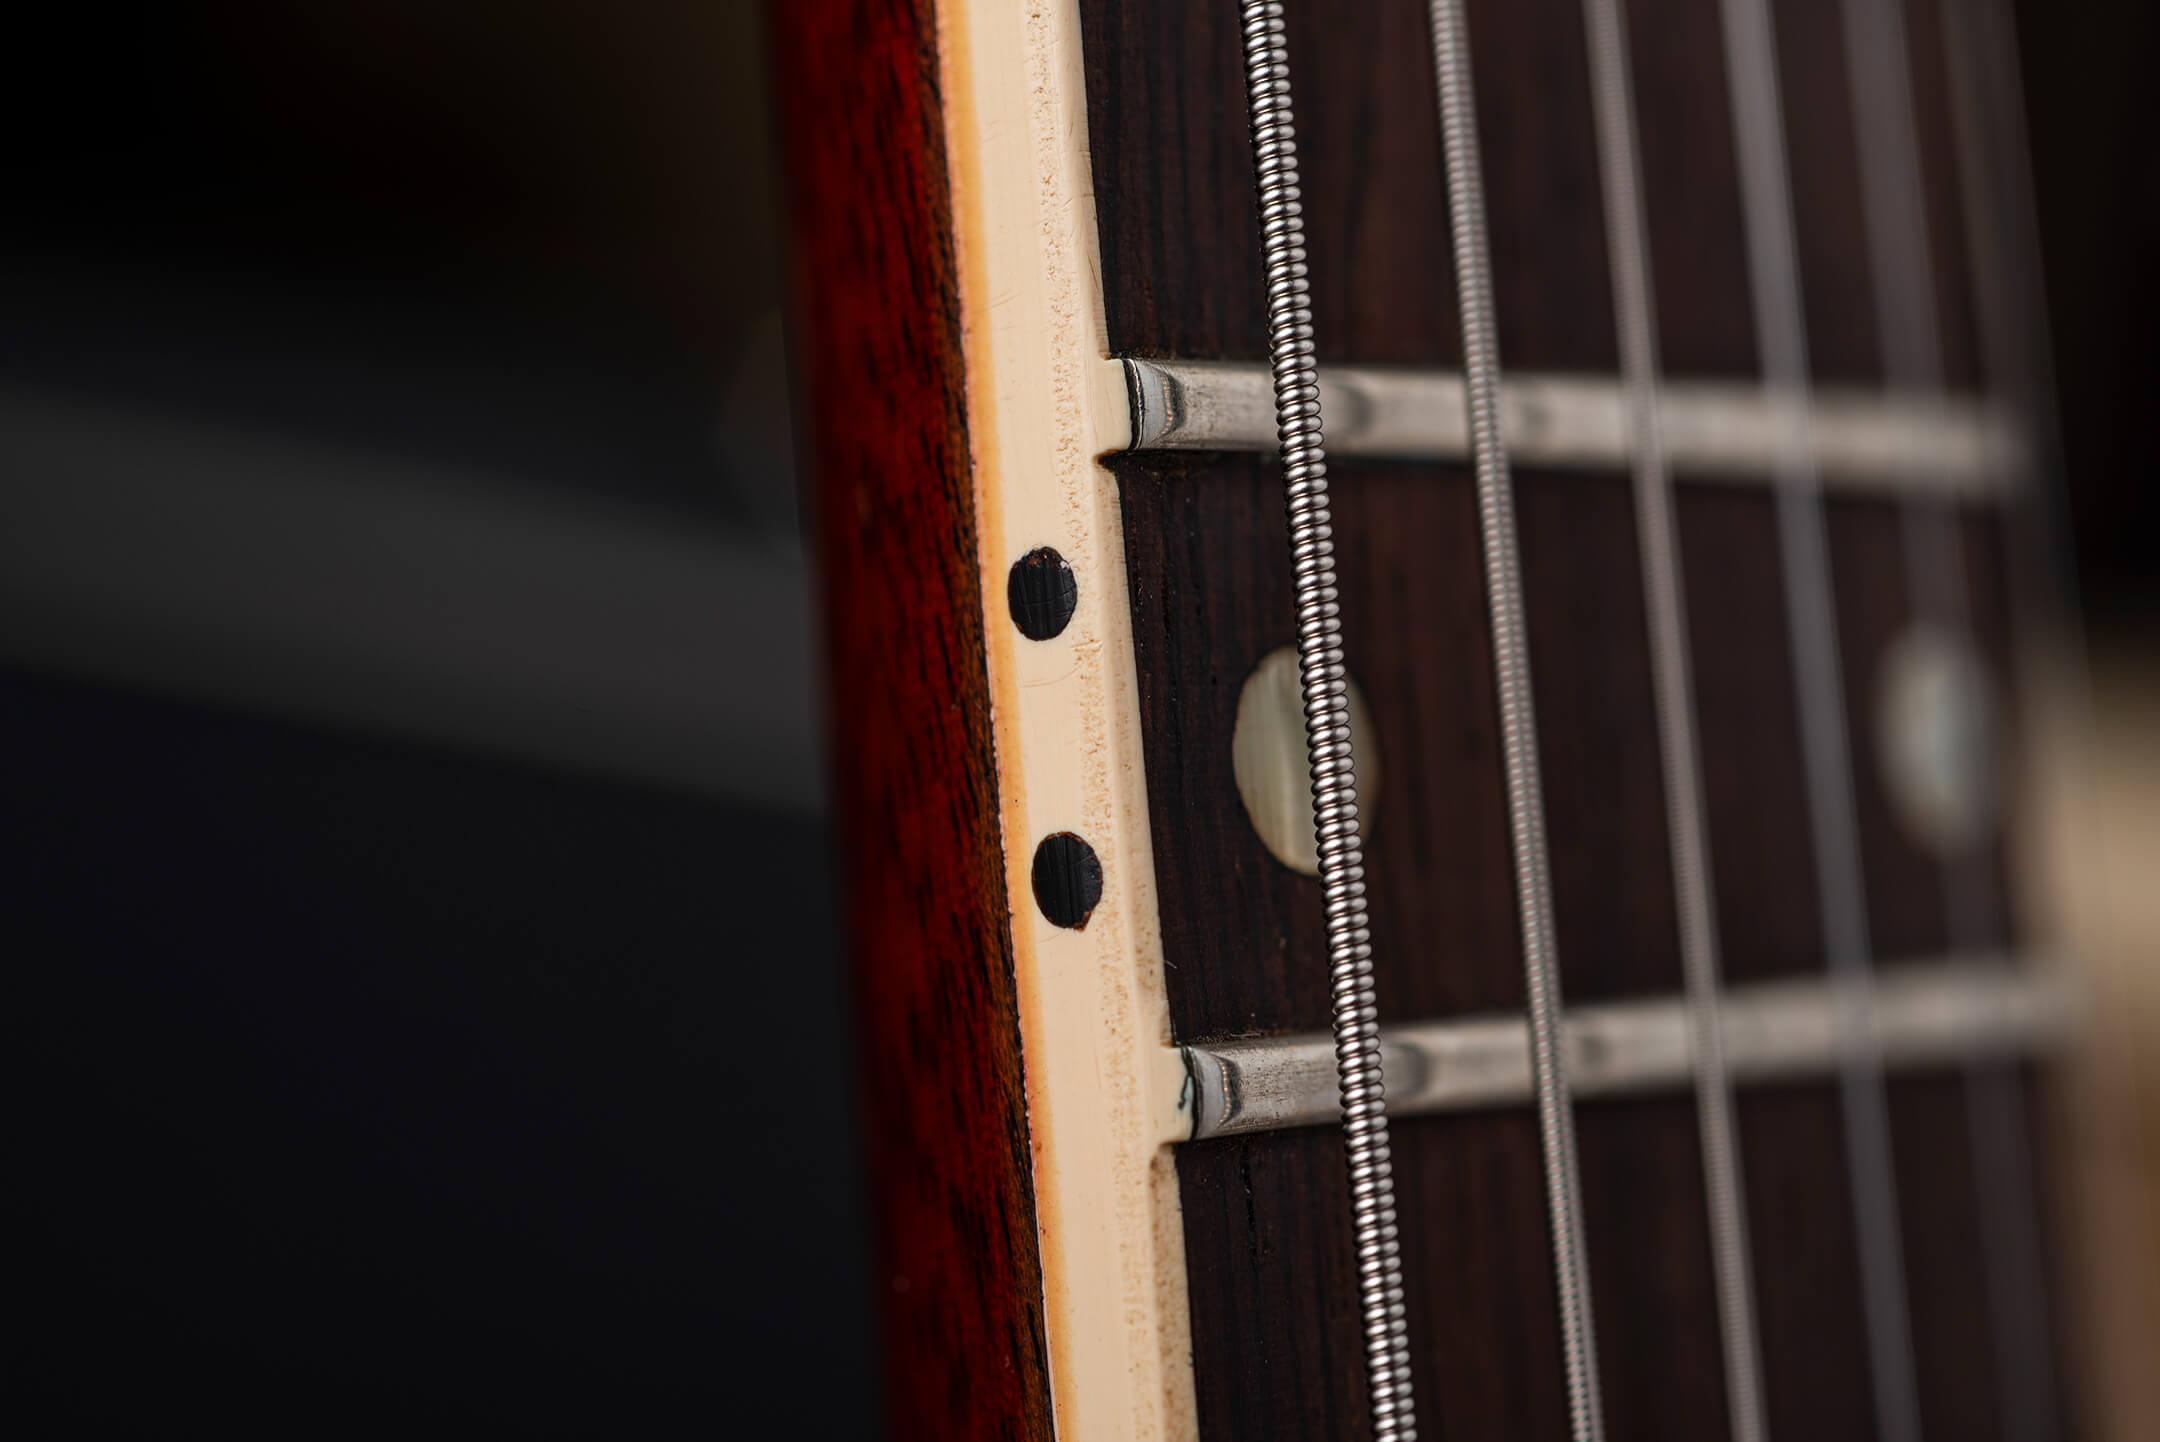 1963 Gibson SG Special Fretboard